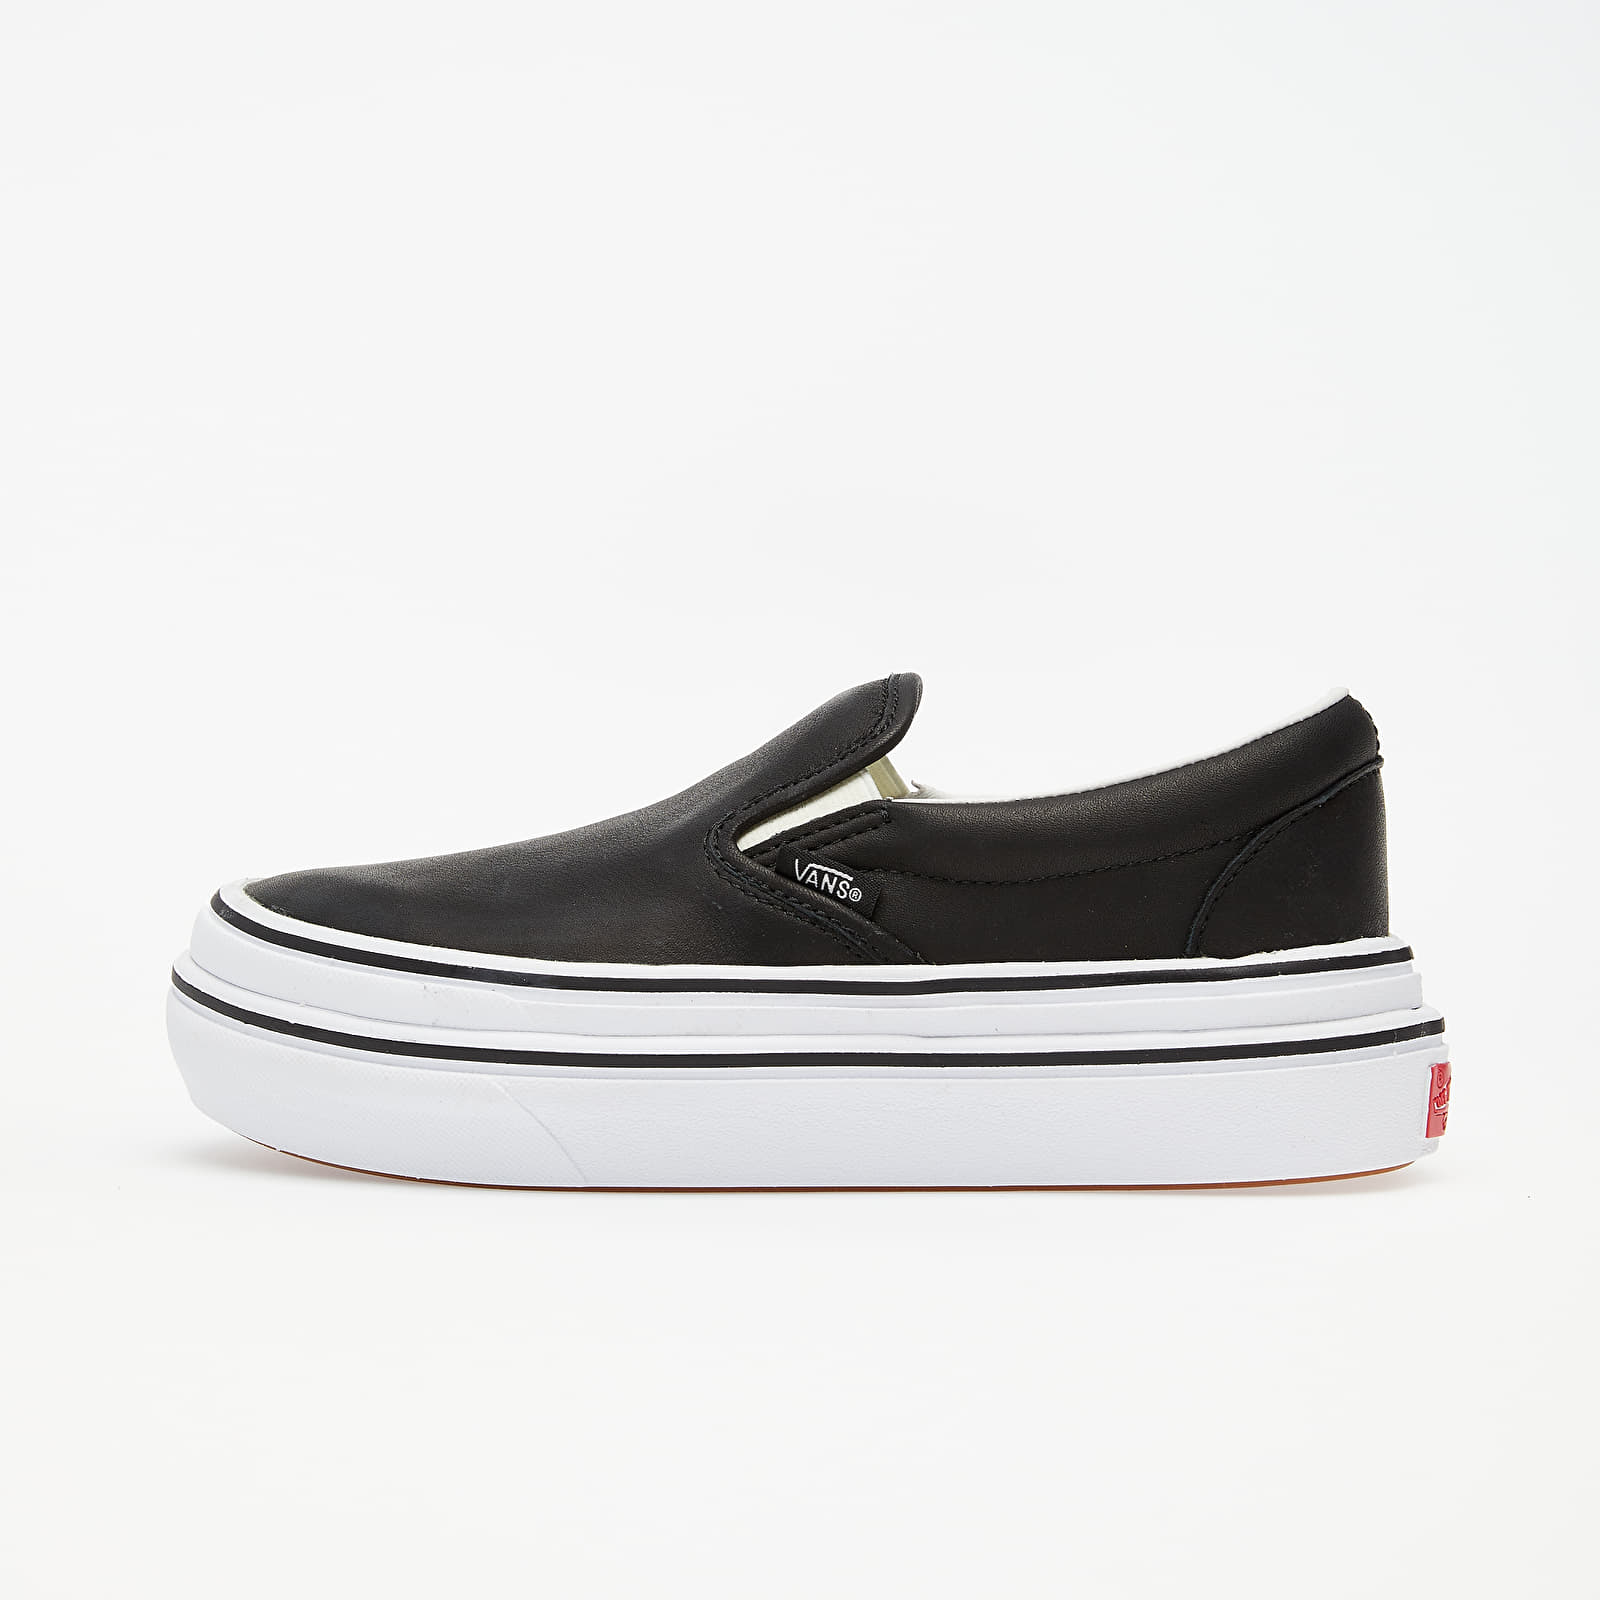 Men's shoes Vans Super Comfycush Slip-On (Leather) Black